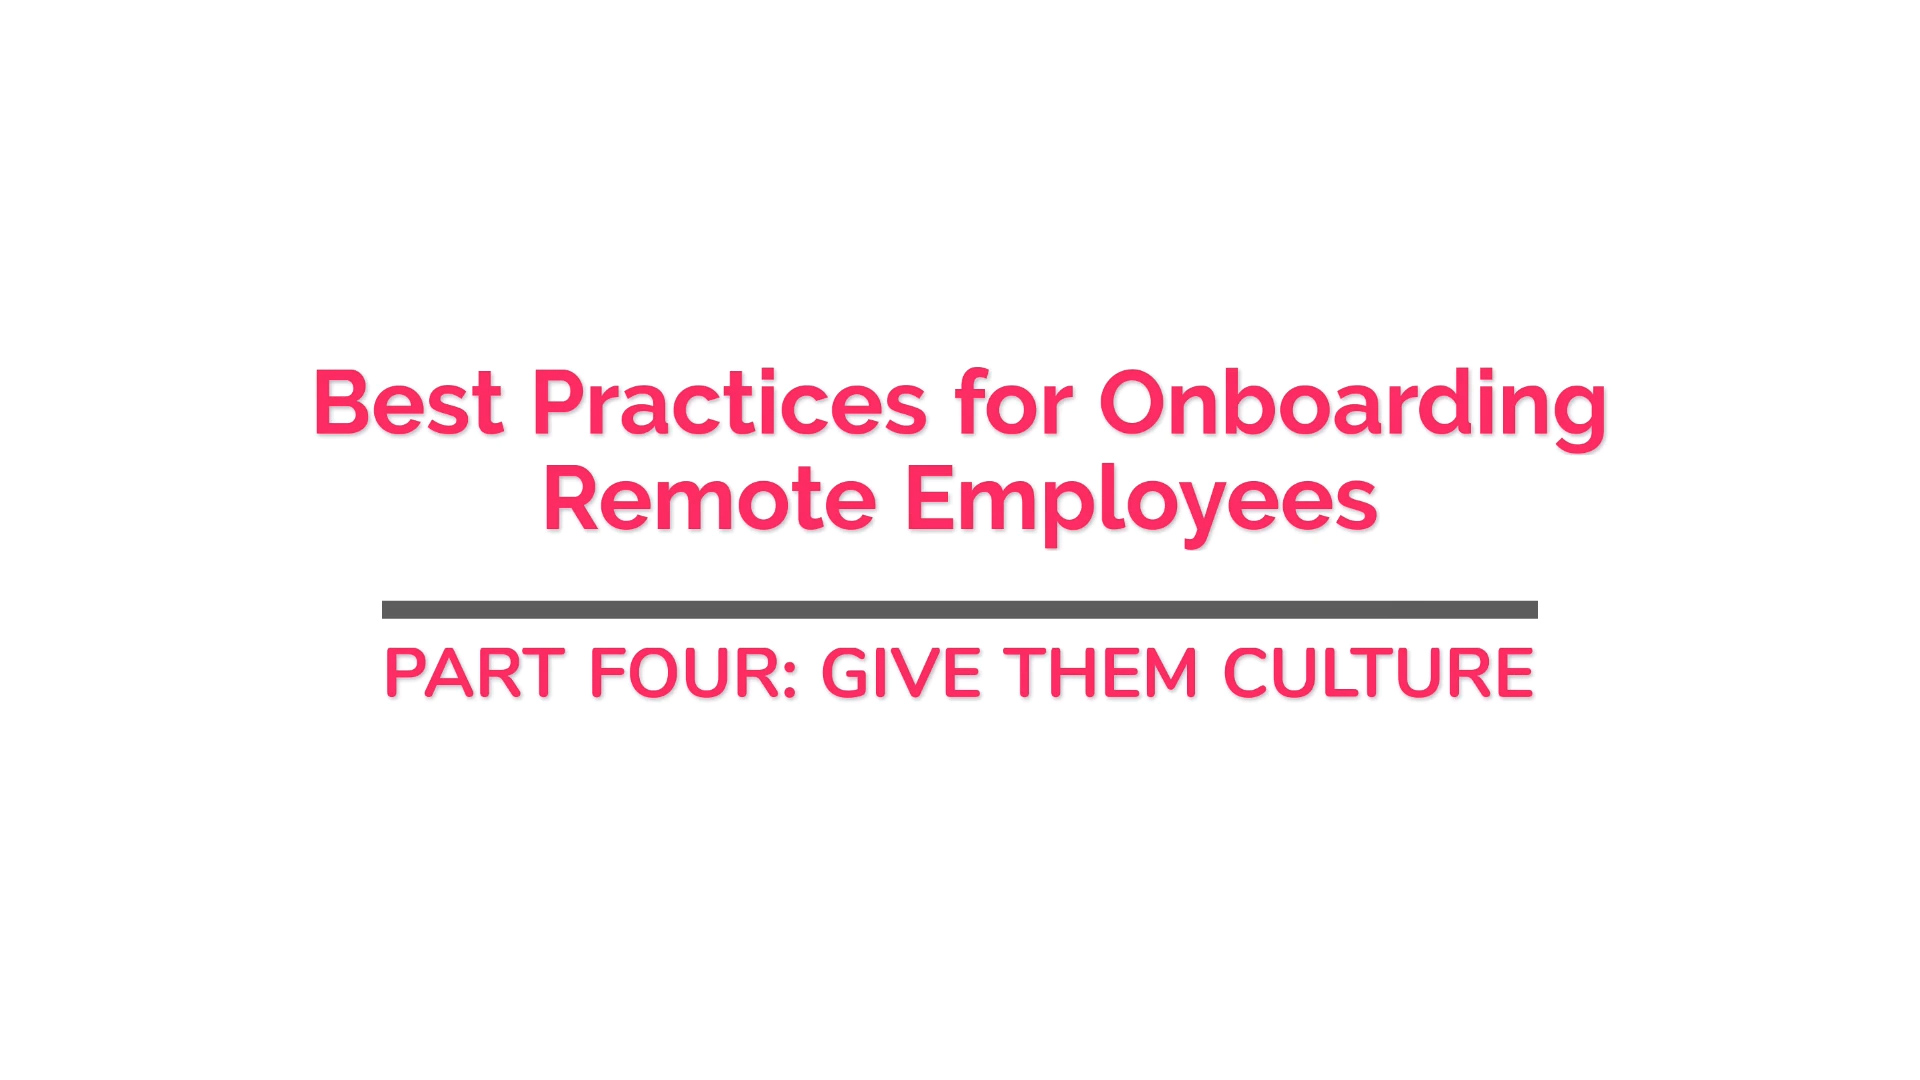 Onboarding new employees remotely: Giving Culture